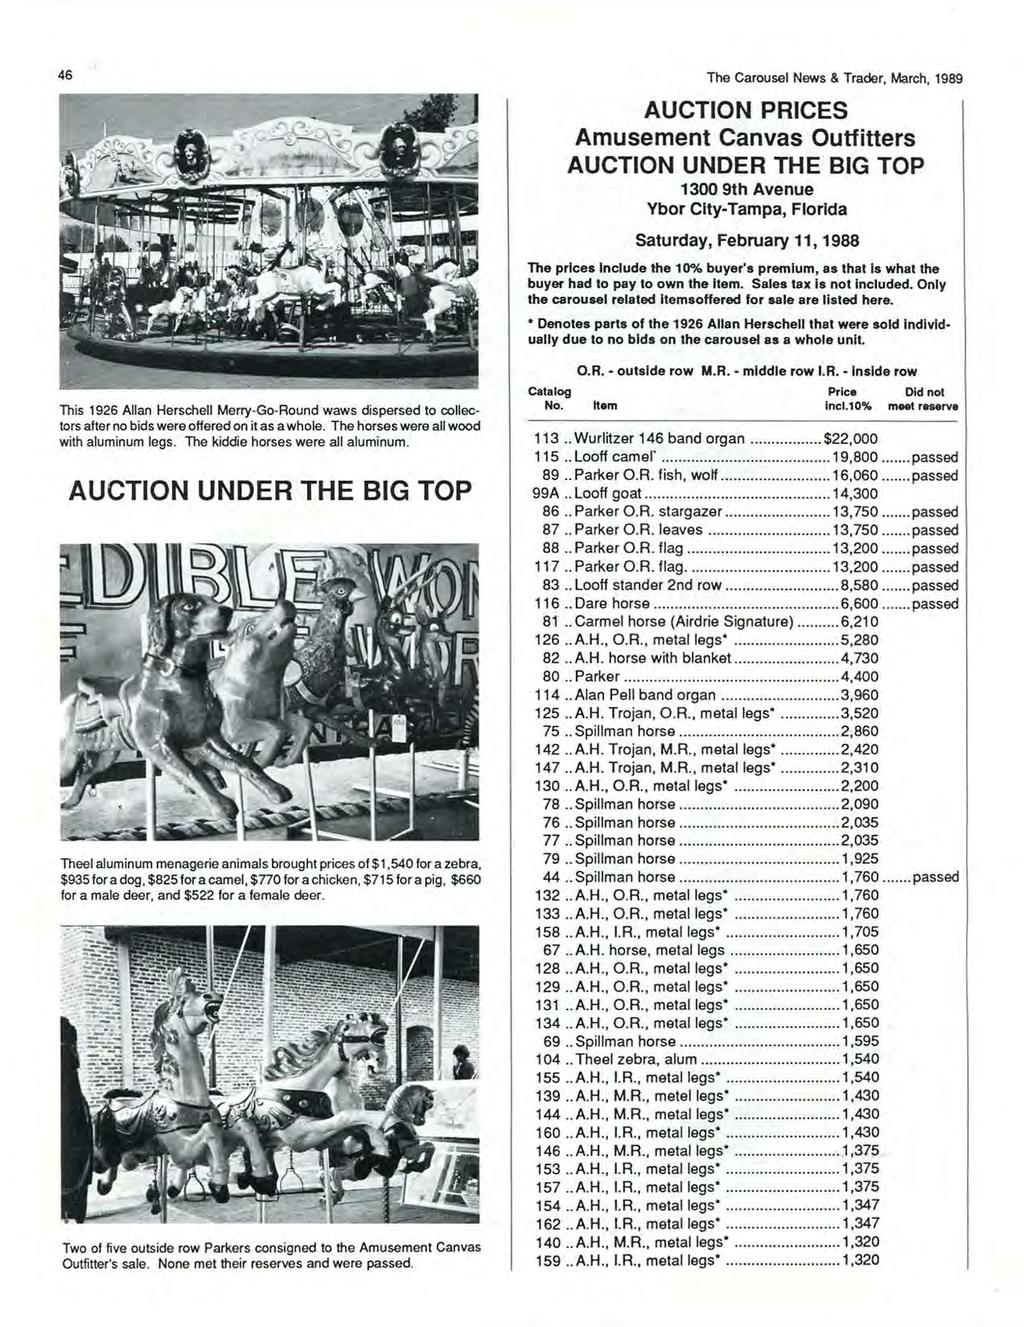 46 The Carousel News & Trader, March, 1989 AUCTION PRICES Amusement Canvas Outfitters AUCTION UNDER THE BIG TOP 1300 9th Avenue Ybor City-Tampa, Florida Saturday, February 11, 1988 The prices Include